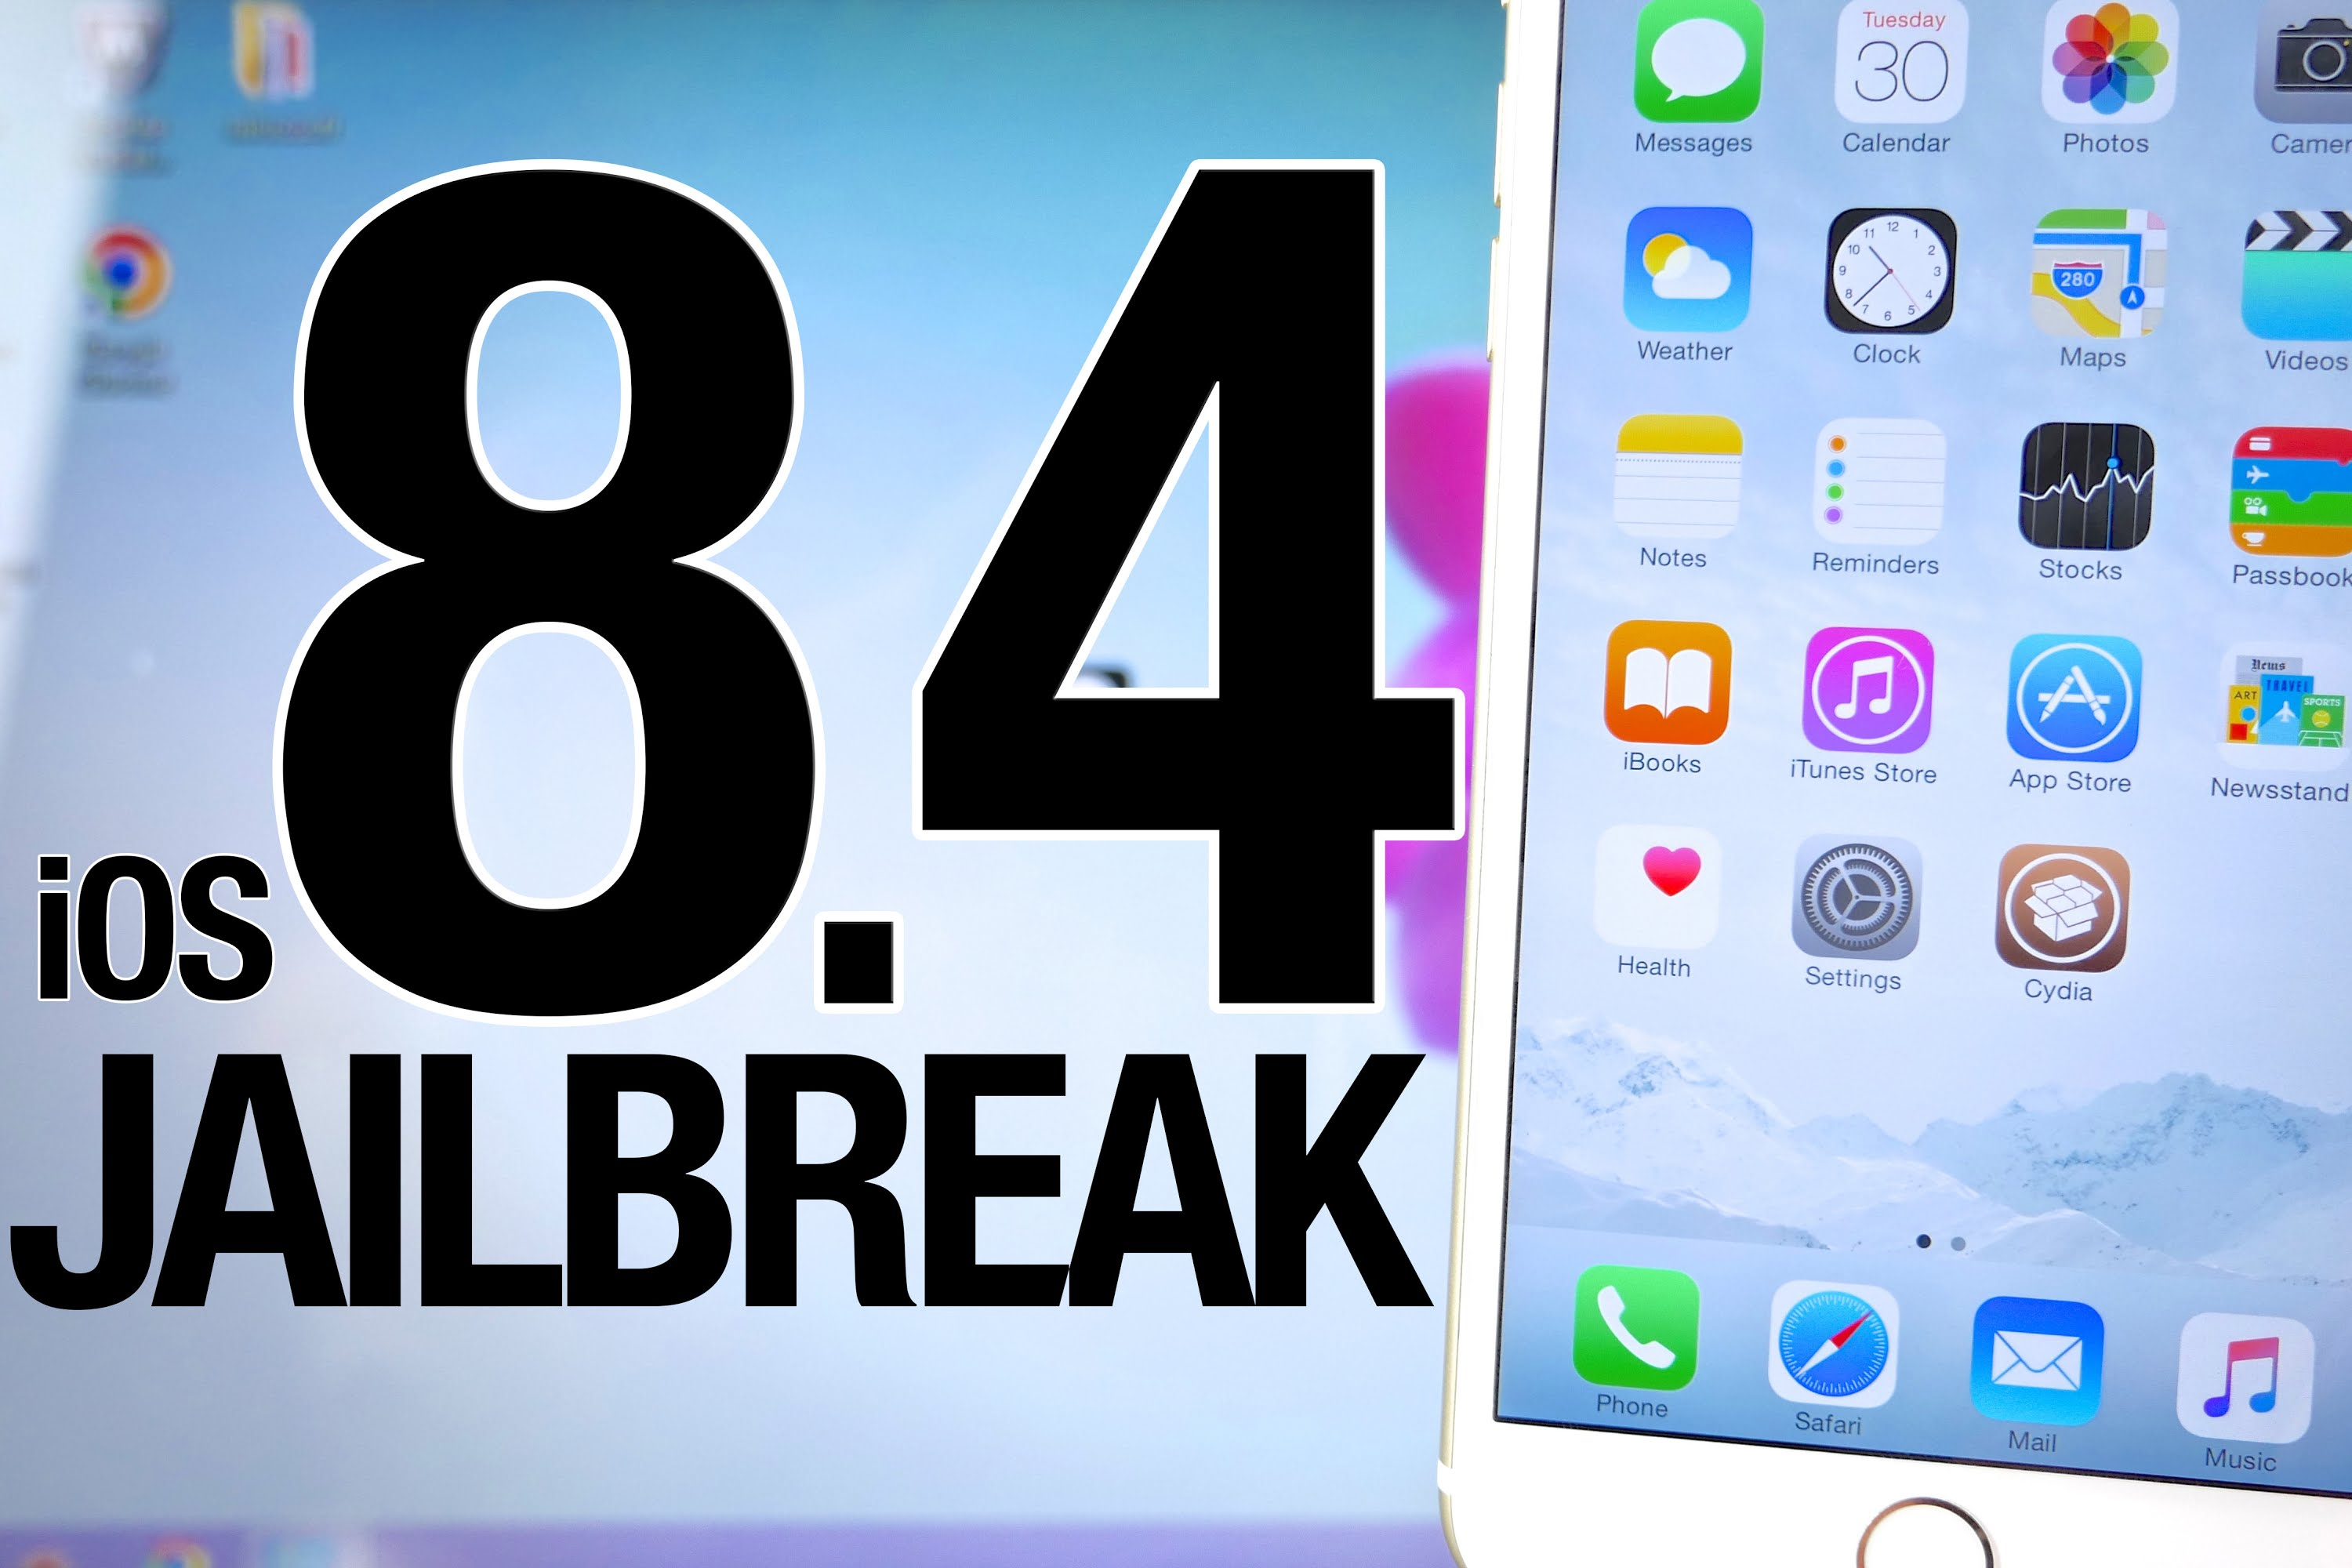 ios 9 tweaks for ios 8.4